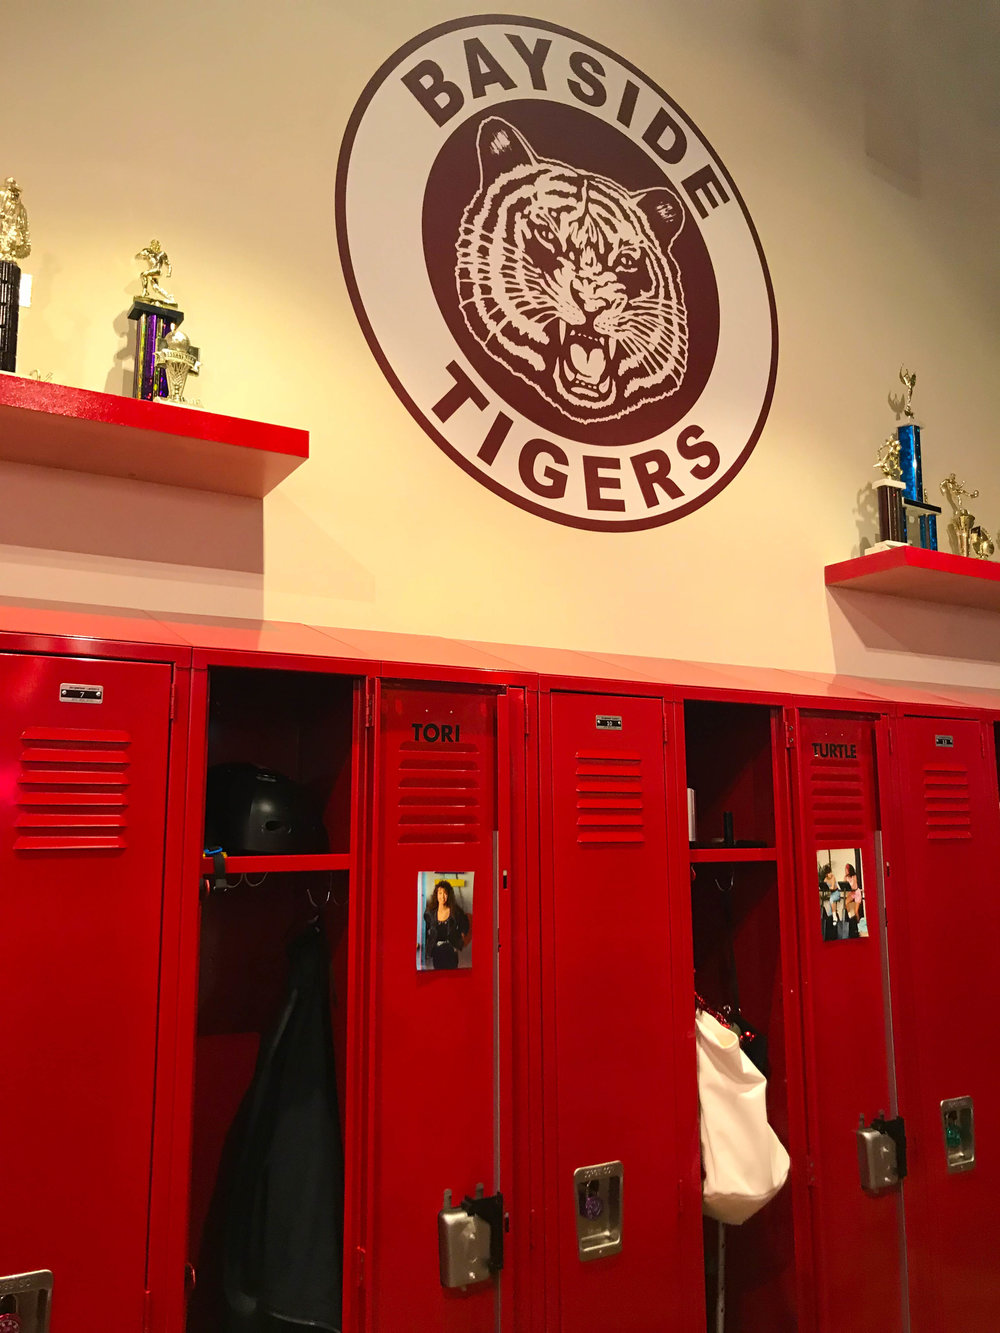 Saved By The Max - Bayside Tigers Lockers